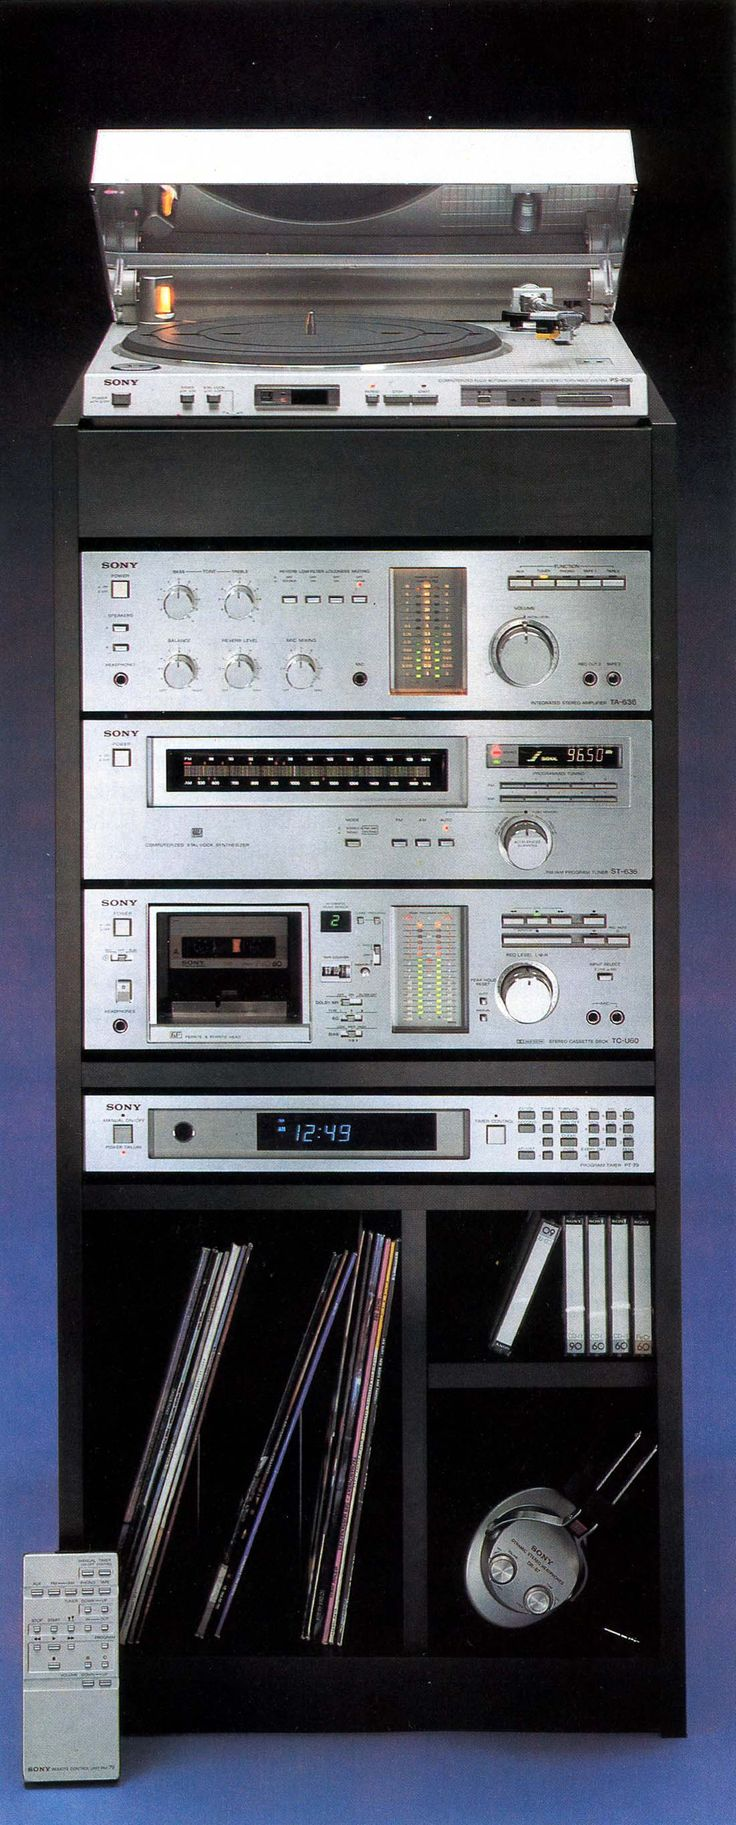 Knock, Knock. Who's there? The 80's. Mass market rack system. What acid-washed jeans were to haute couture.  PS-636 Sony PT-79R, Sony ST-636, Sony Studio 7080, Sony TA-636, Sony TC-U60. Check please (and a bottle of Pepto-Bismol)!